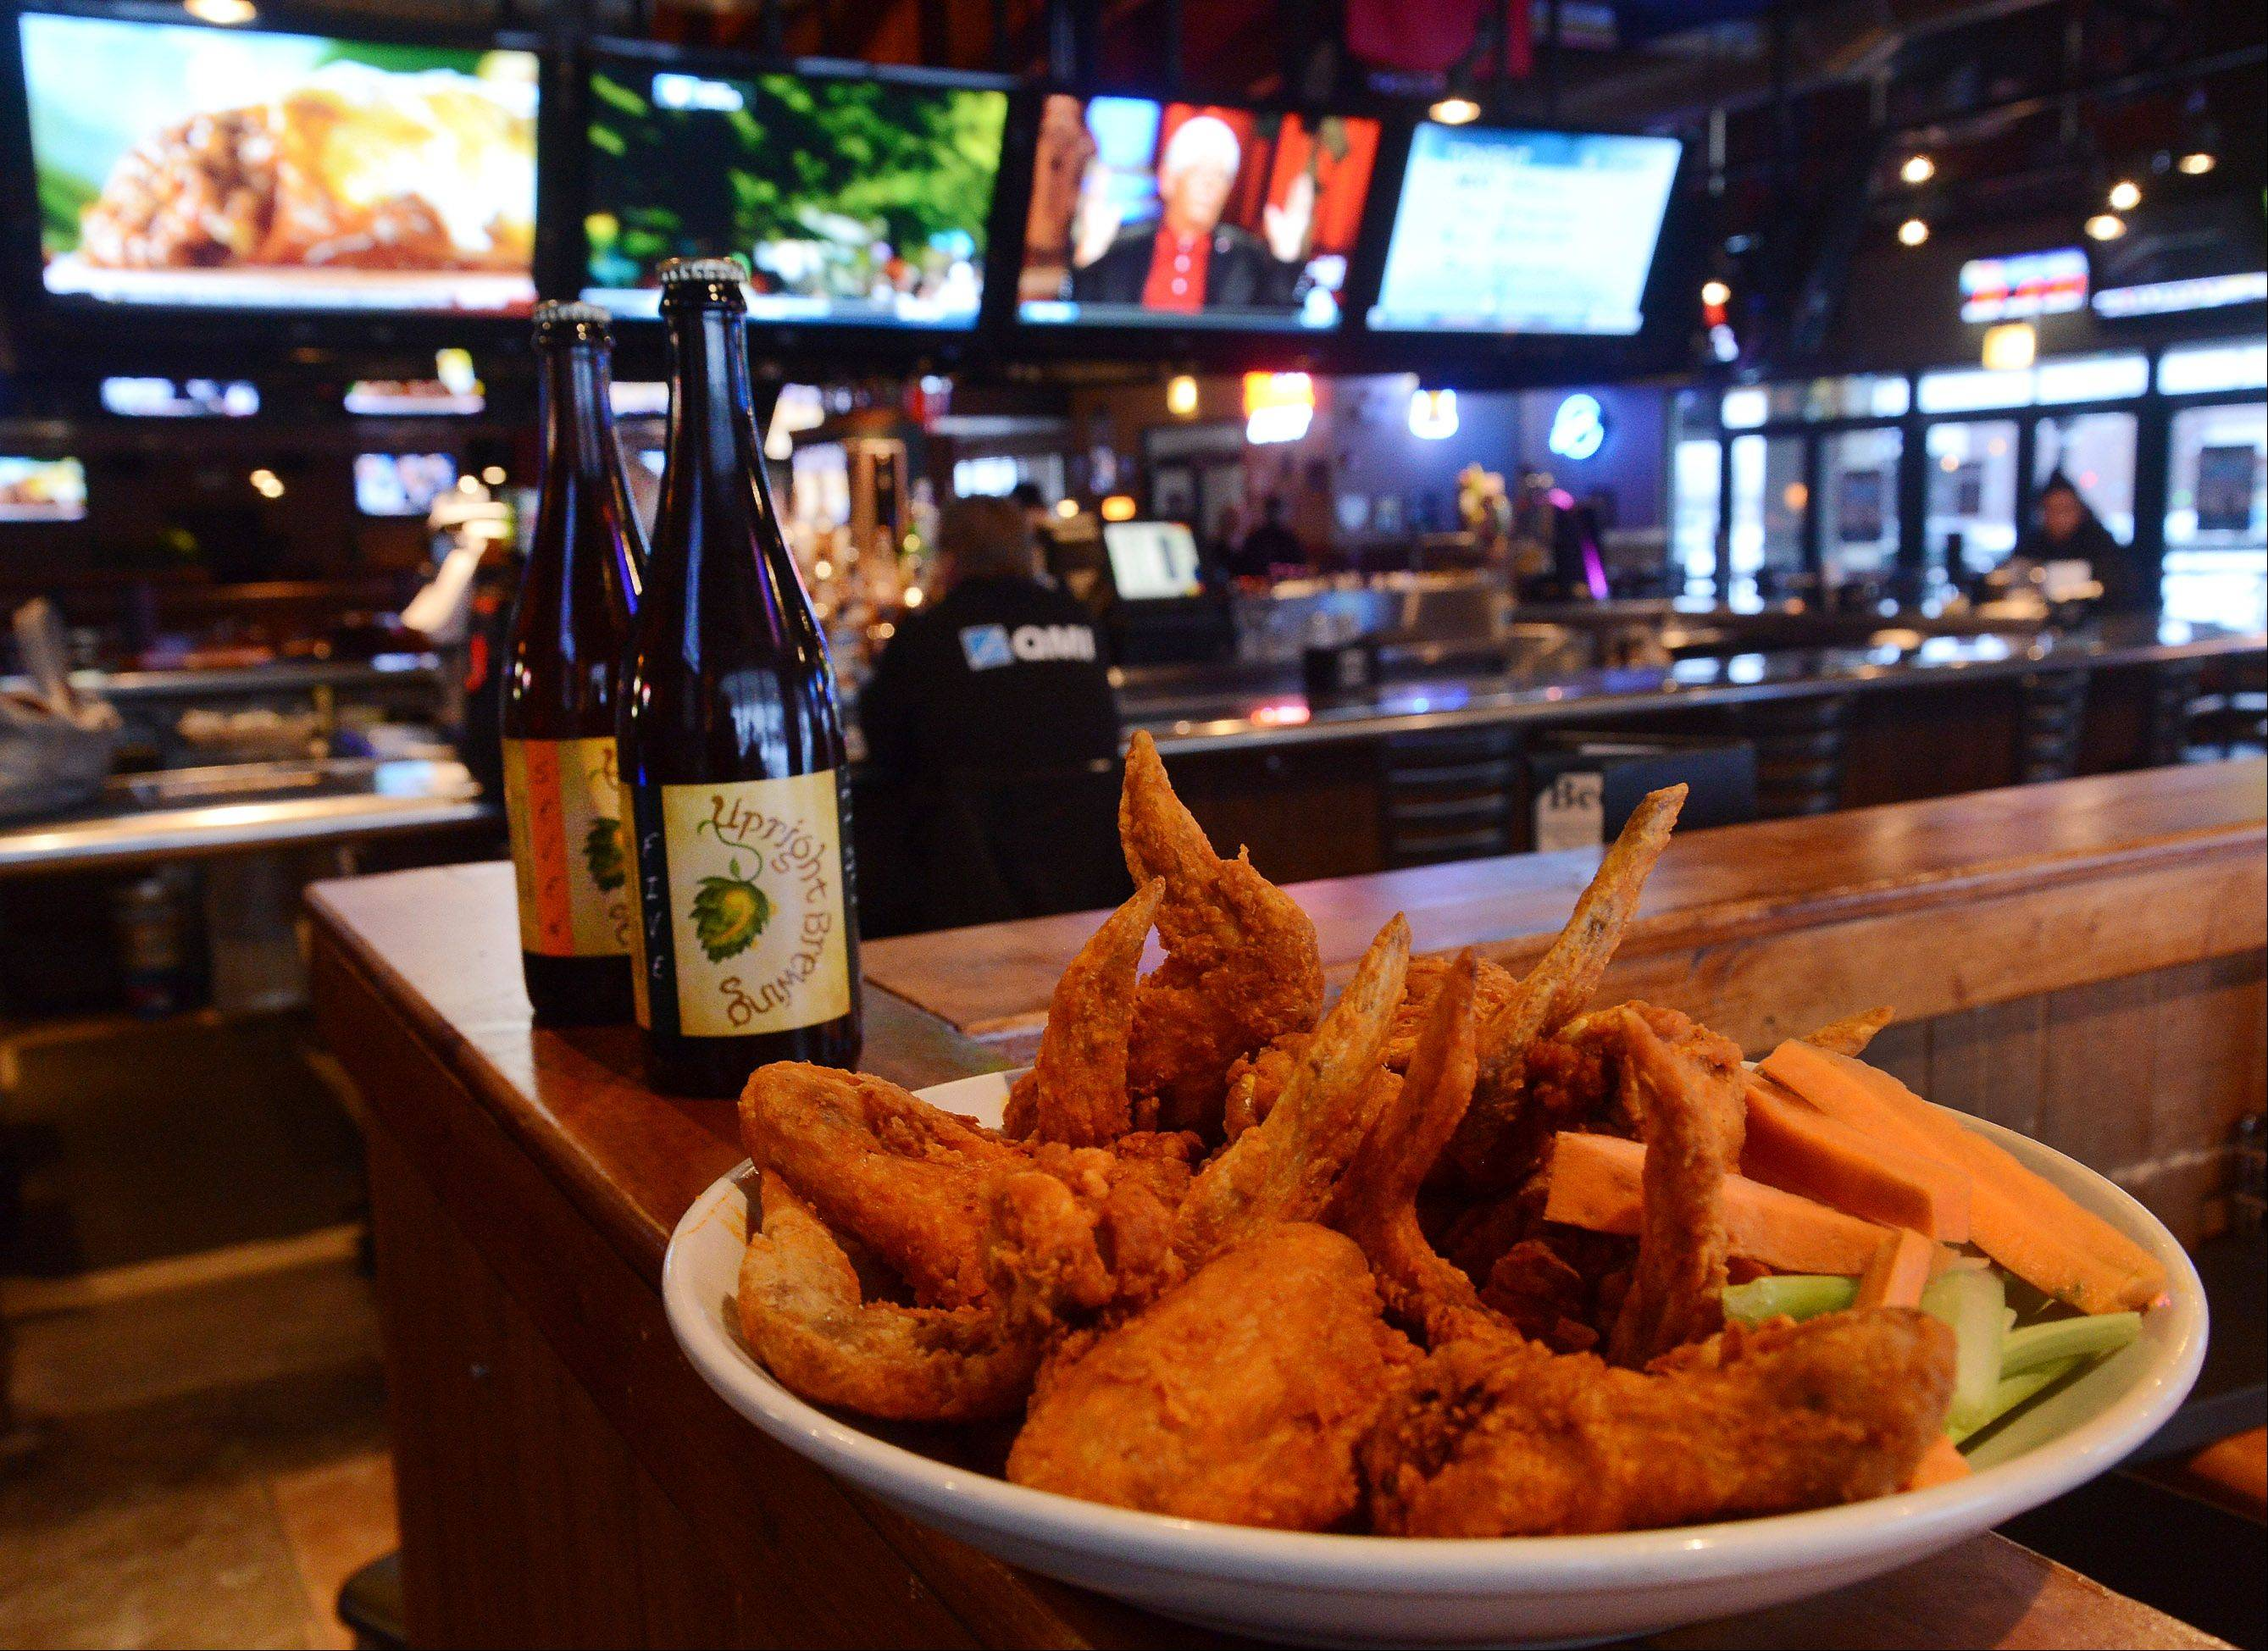 Beer and wings make a good Super Bowl combo at Real Time Sports in Elk Grove Village.